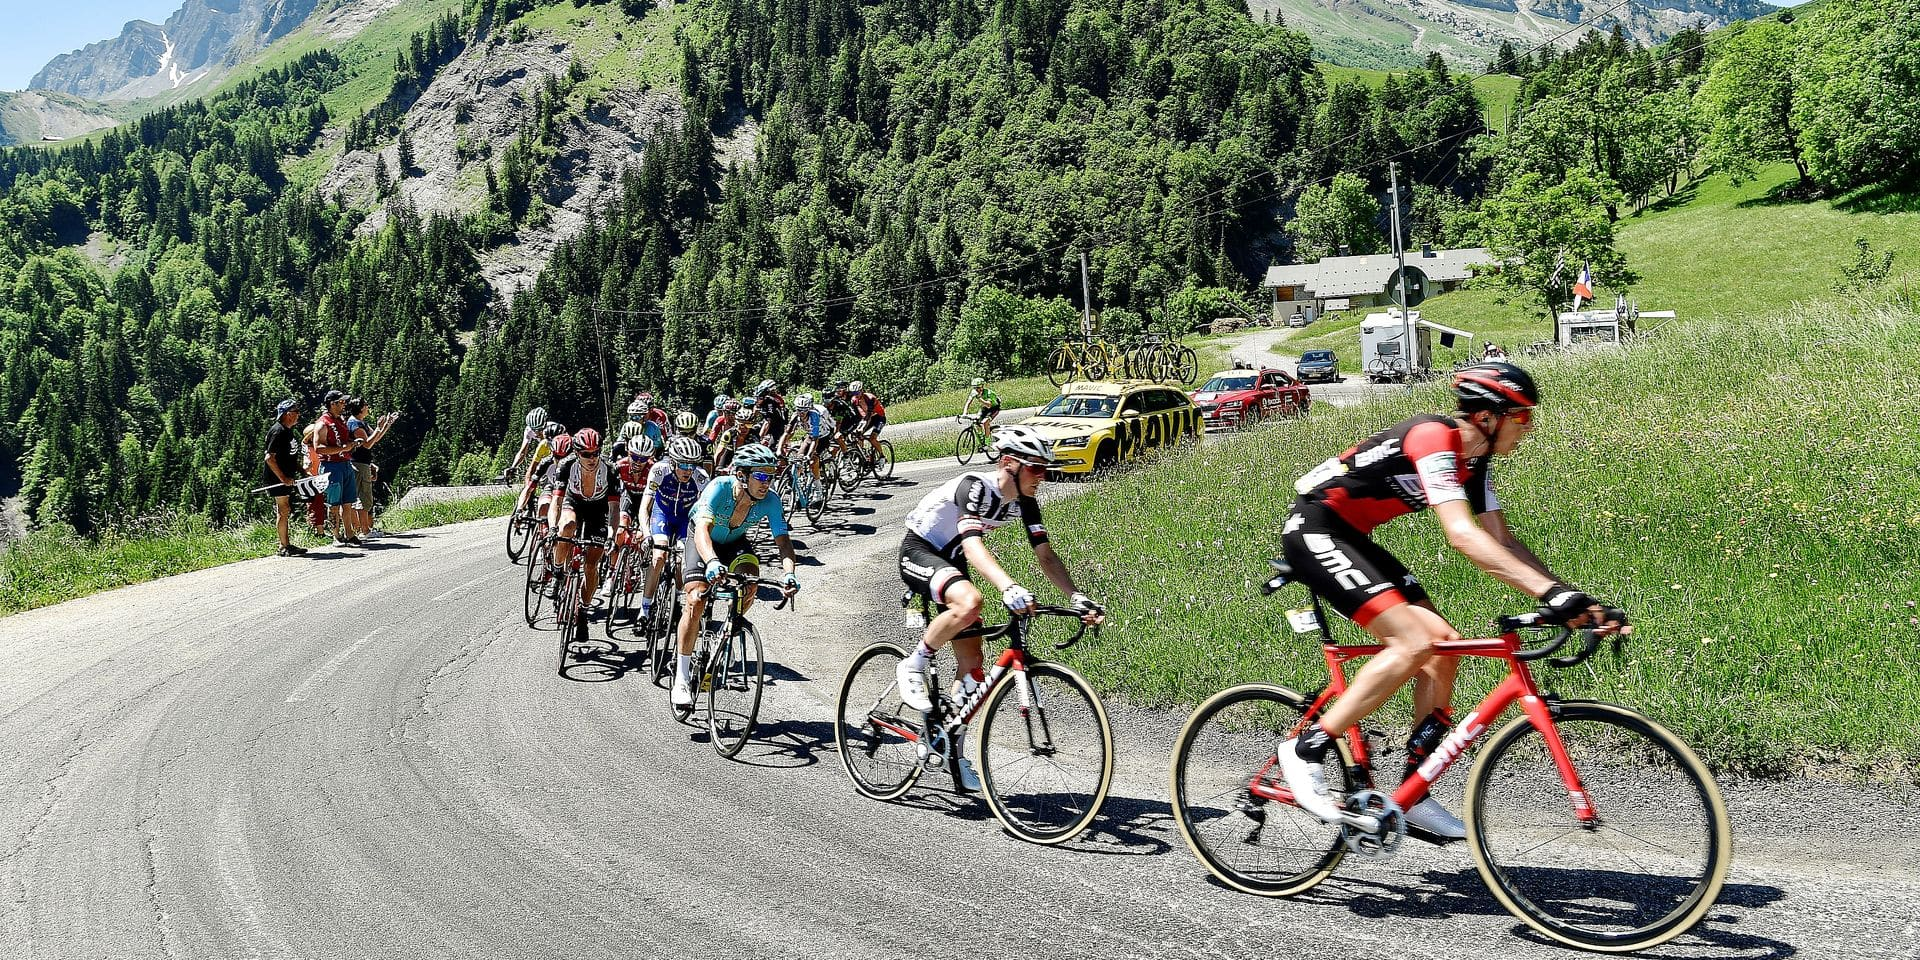 The pack rides during the 115 km eighth stage of the 69th edition of the Criterium du Dauphine cycling race on June 11, 2017 between Albertville and the Plateau de Solaison in Brison, French Alps. / AFP PHOTO / PHILIPPE LOPEZ